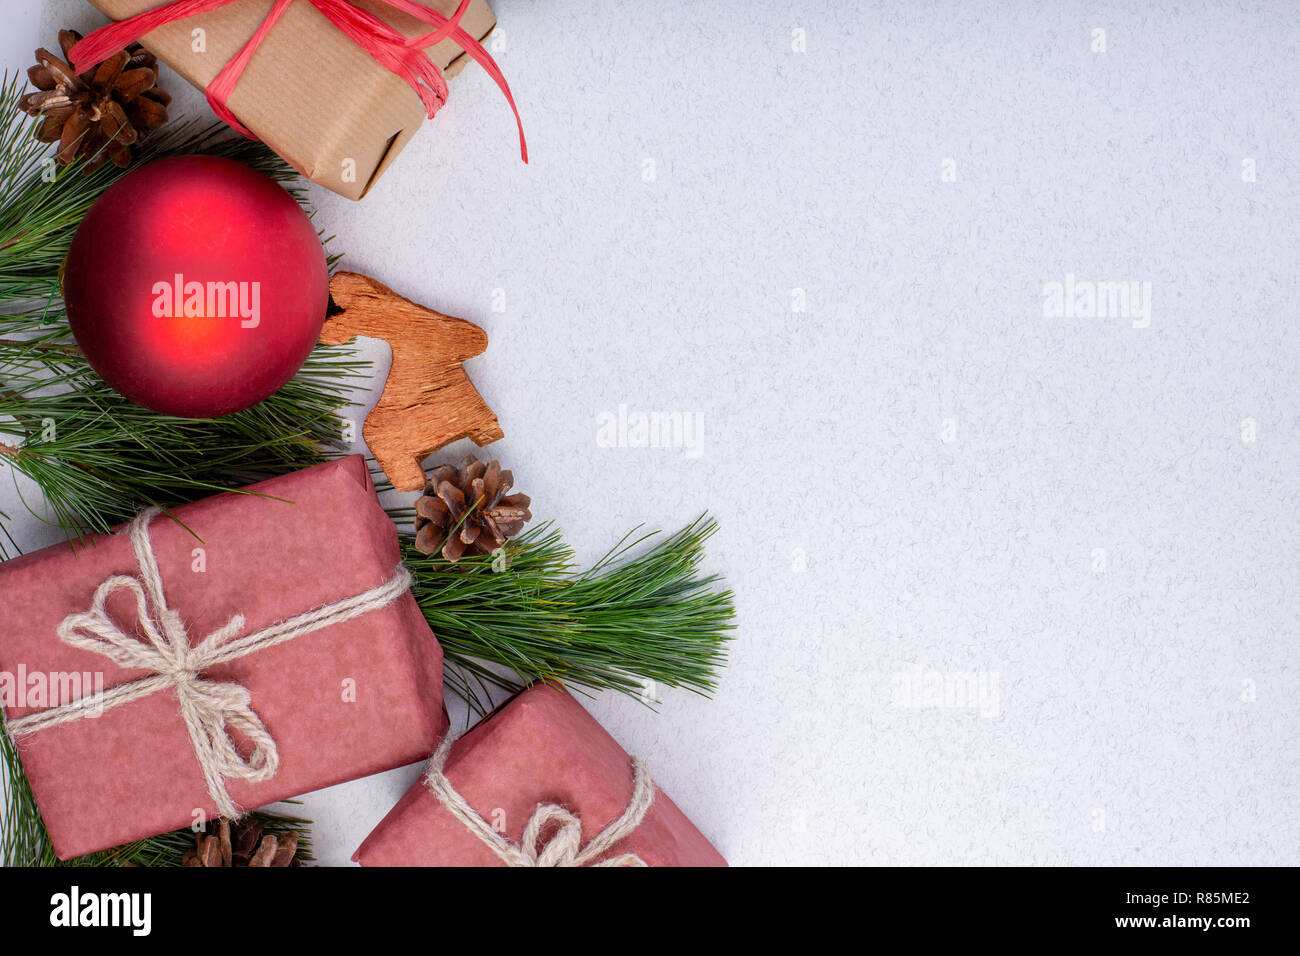 Christmas Composition Christmas White Decorations Fir Tree